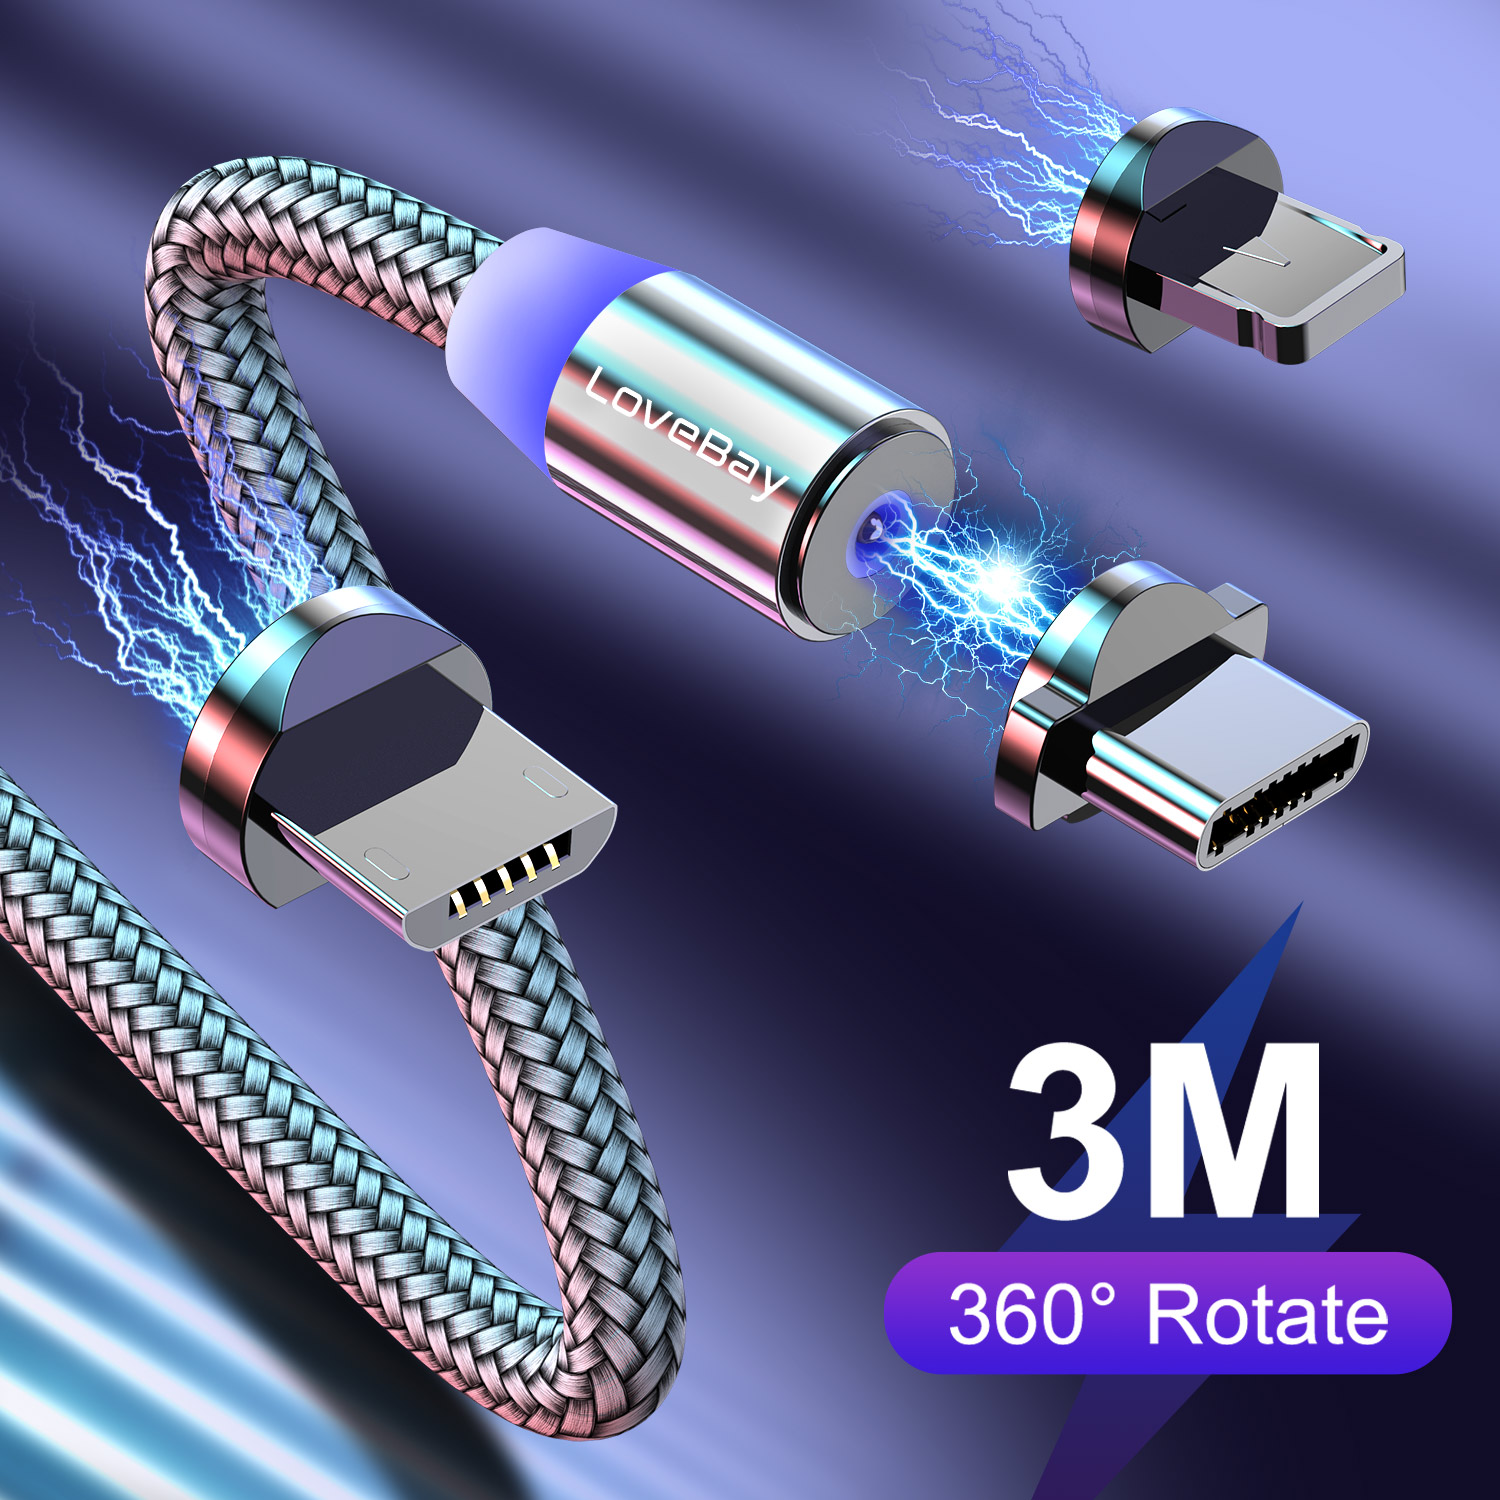 Lovebay Magnetic USB <font><b>Cable</b></font> Fast Charging For Iphone TYPE-C Micro 0.5/<font><b>1</b></font>/2/3M Magnet USB <font><b>Cable</b></font> Mobile Phone USB Charging Cord image